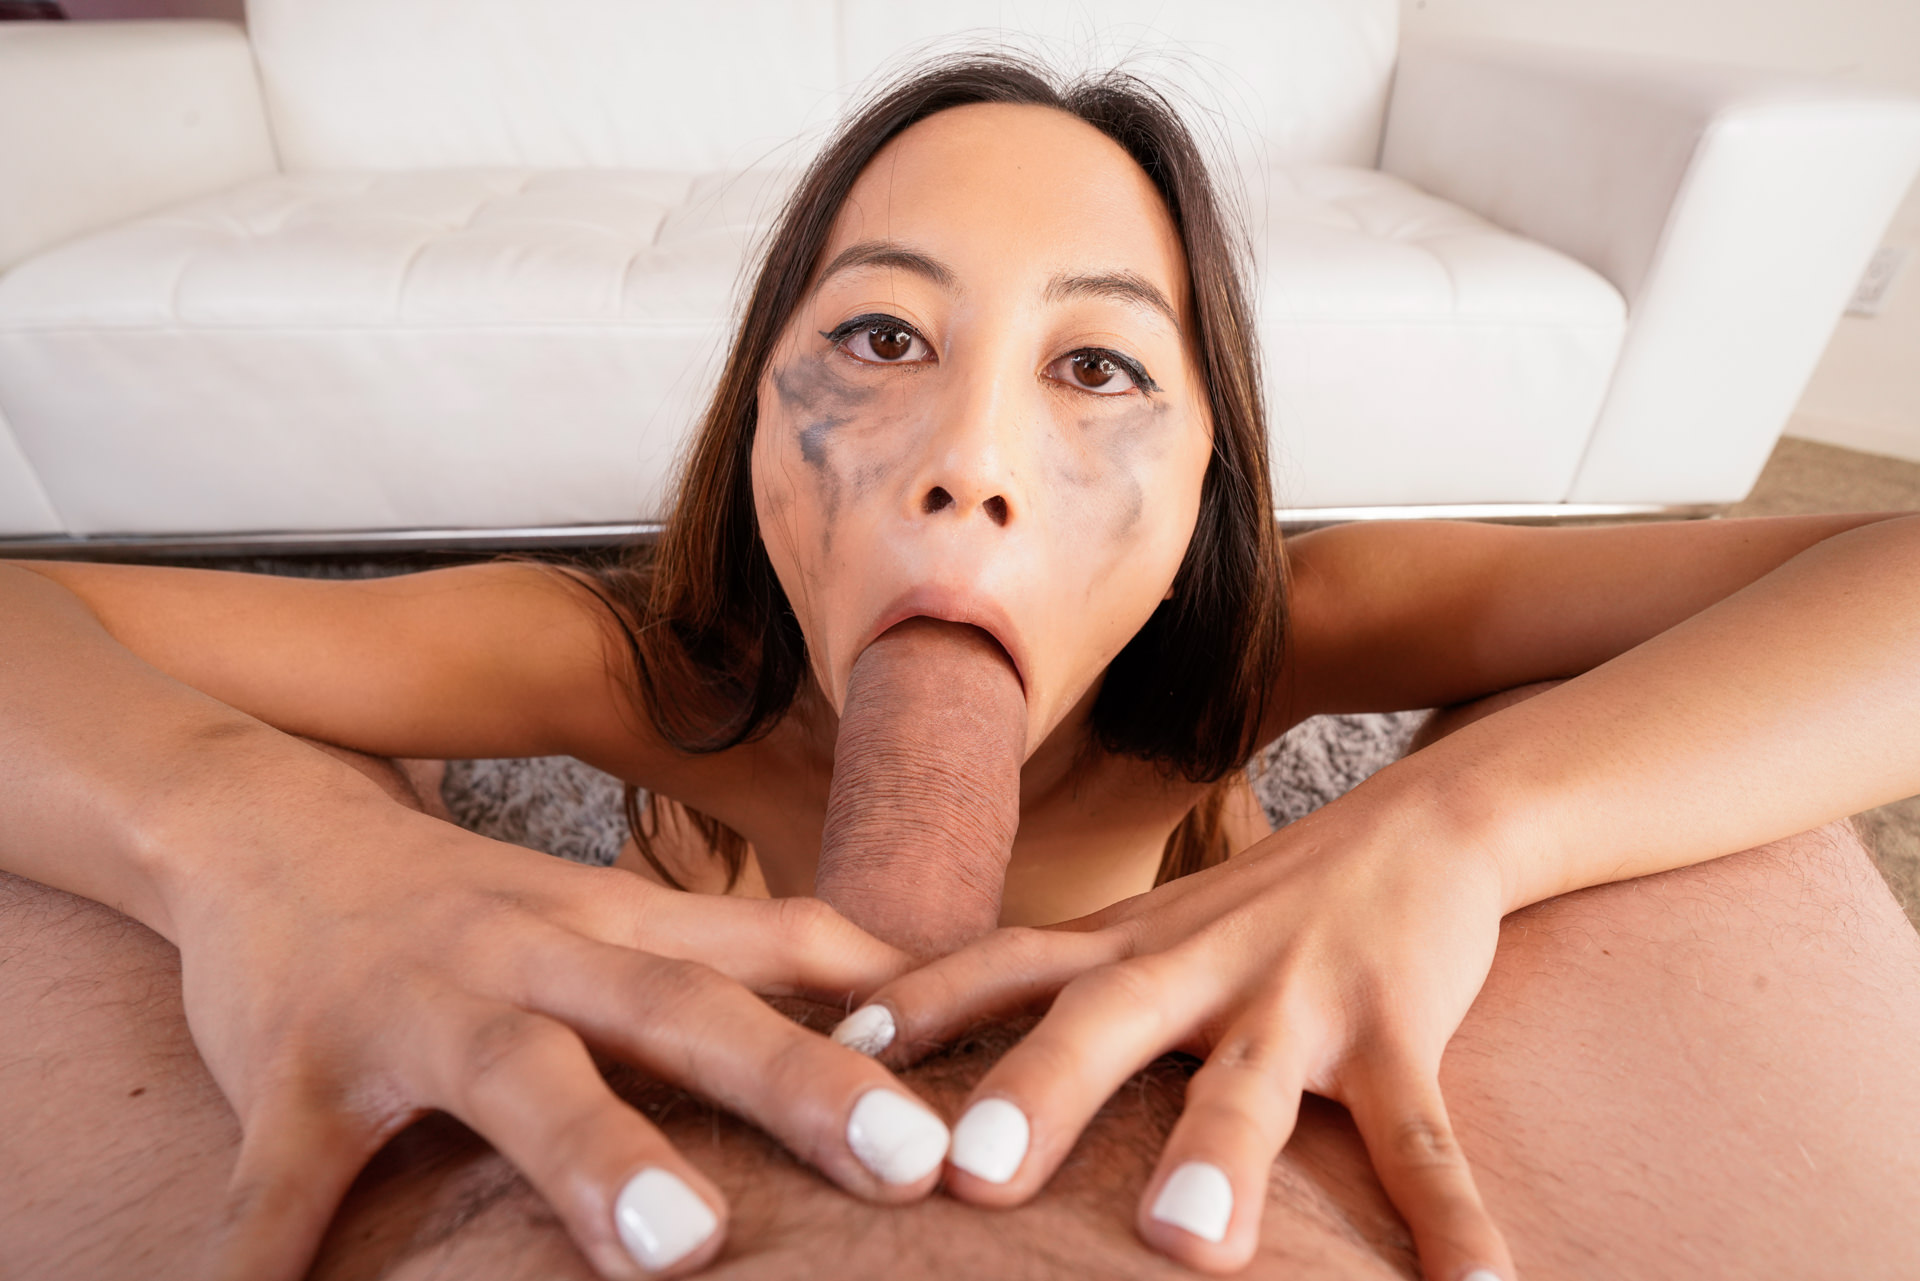 [Throated] Alexia Anders (Alexia's All In Blowjob / 04.16.2021)